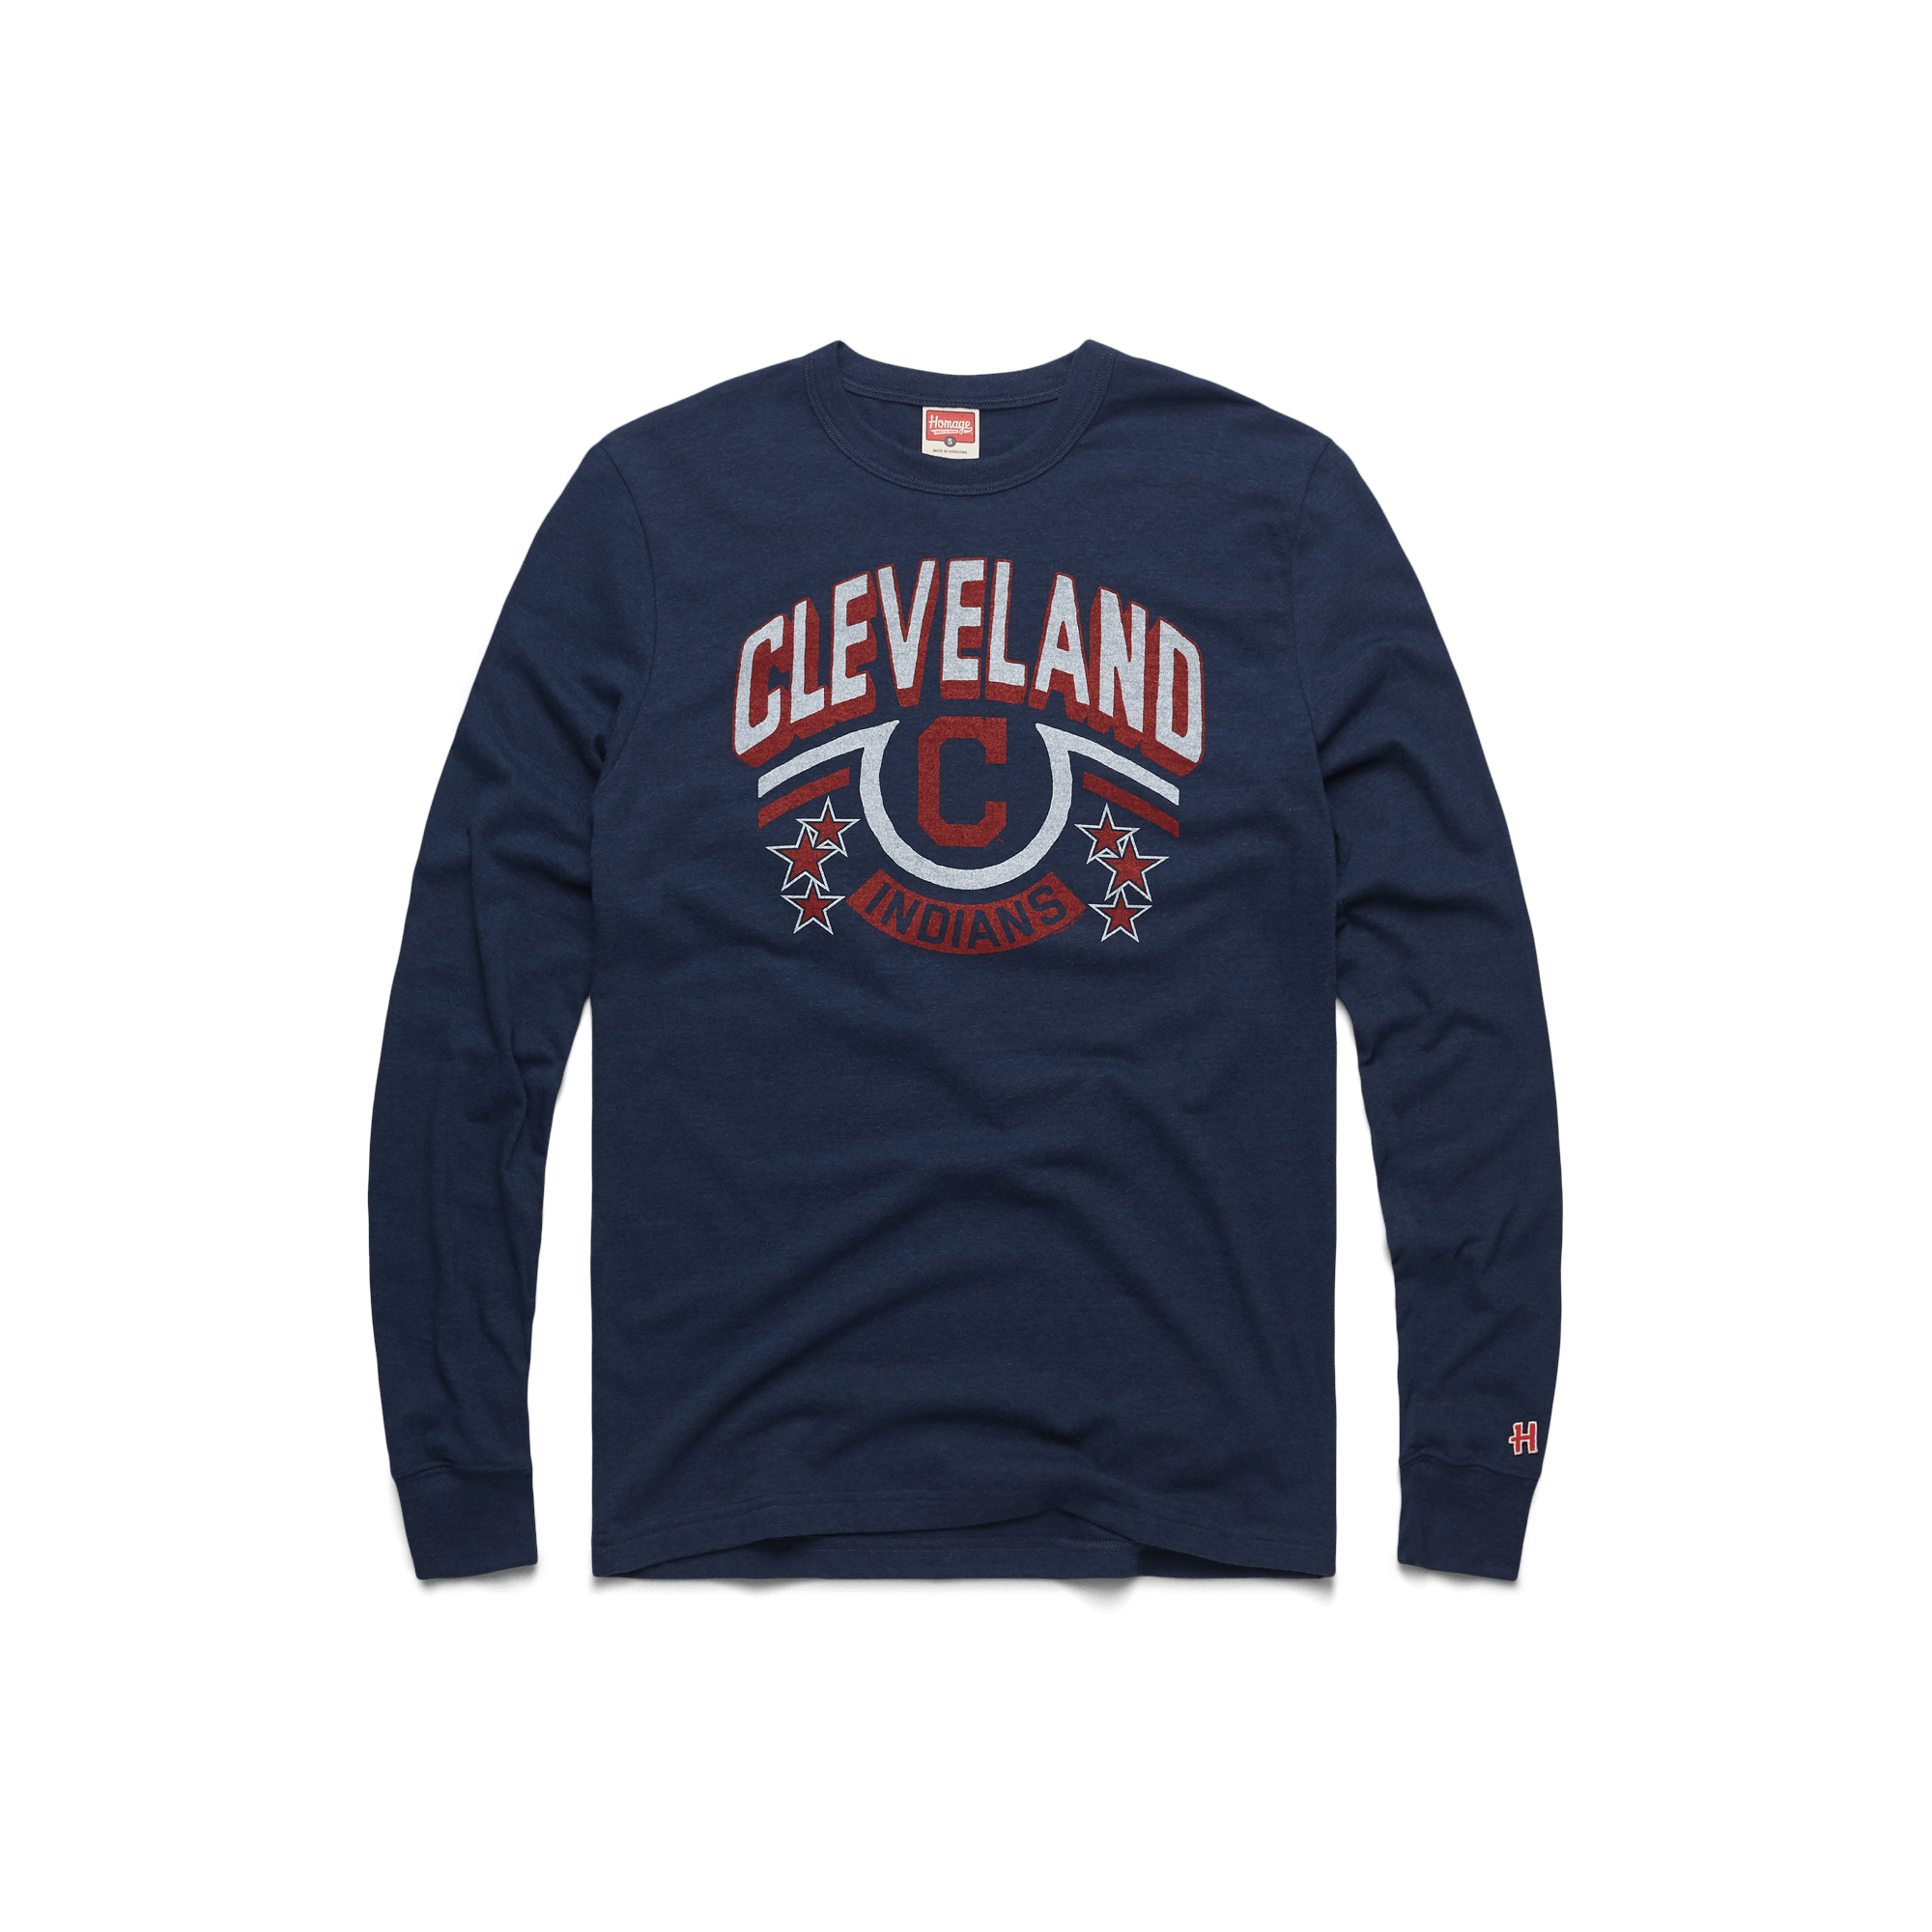 online store 8574f 30e24 Cleveland Indians Retro Officially Licensed MLB Apparel – HOMAGE